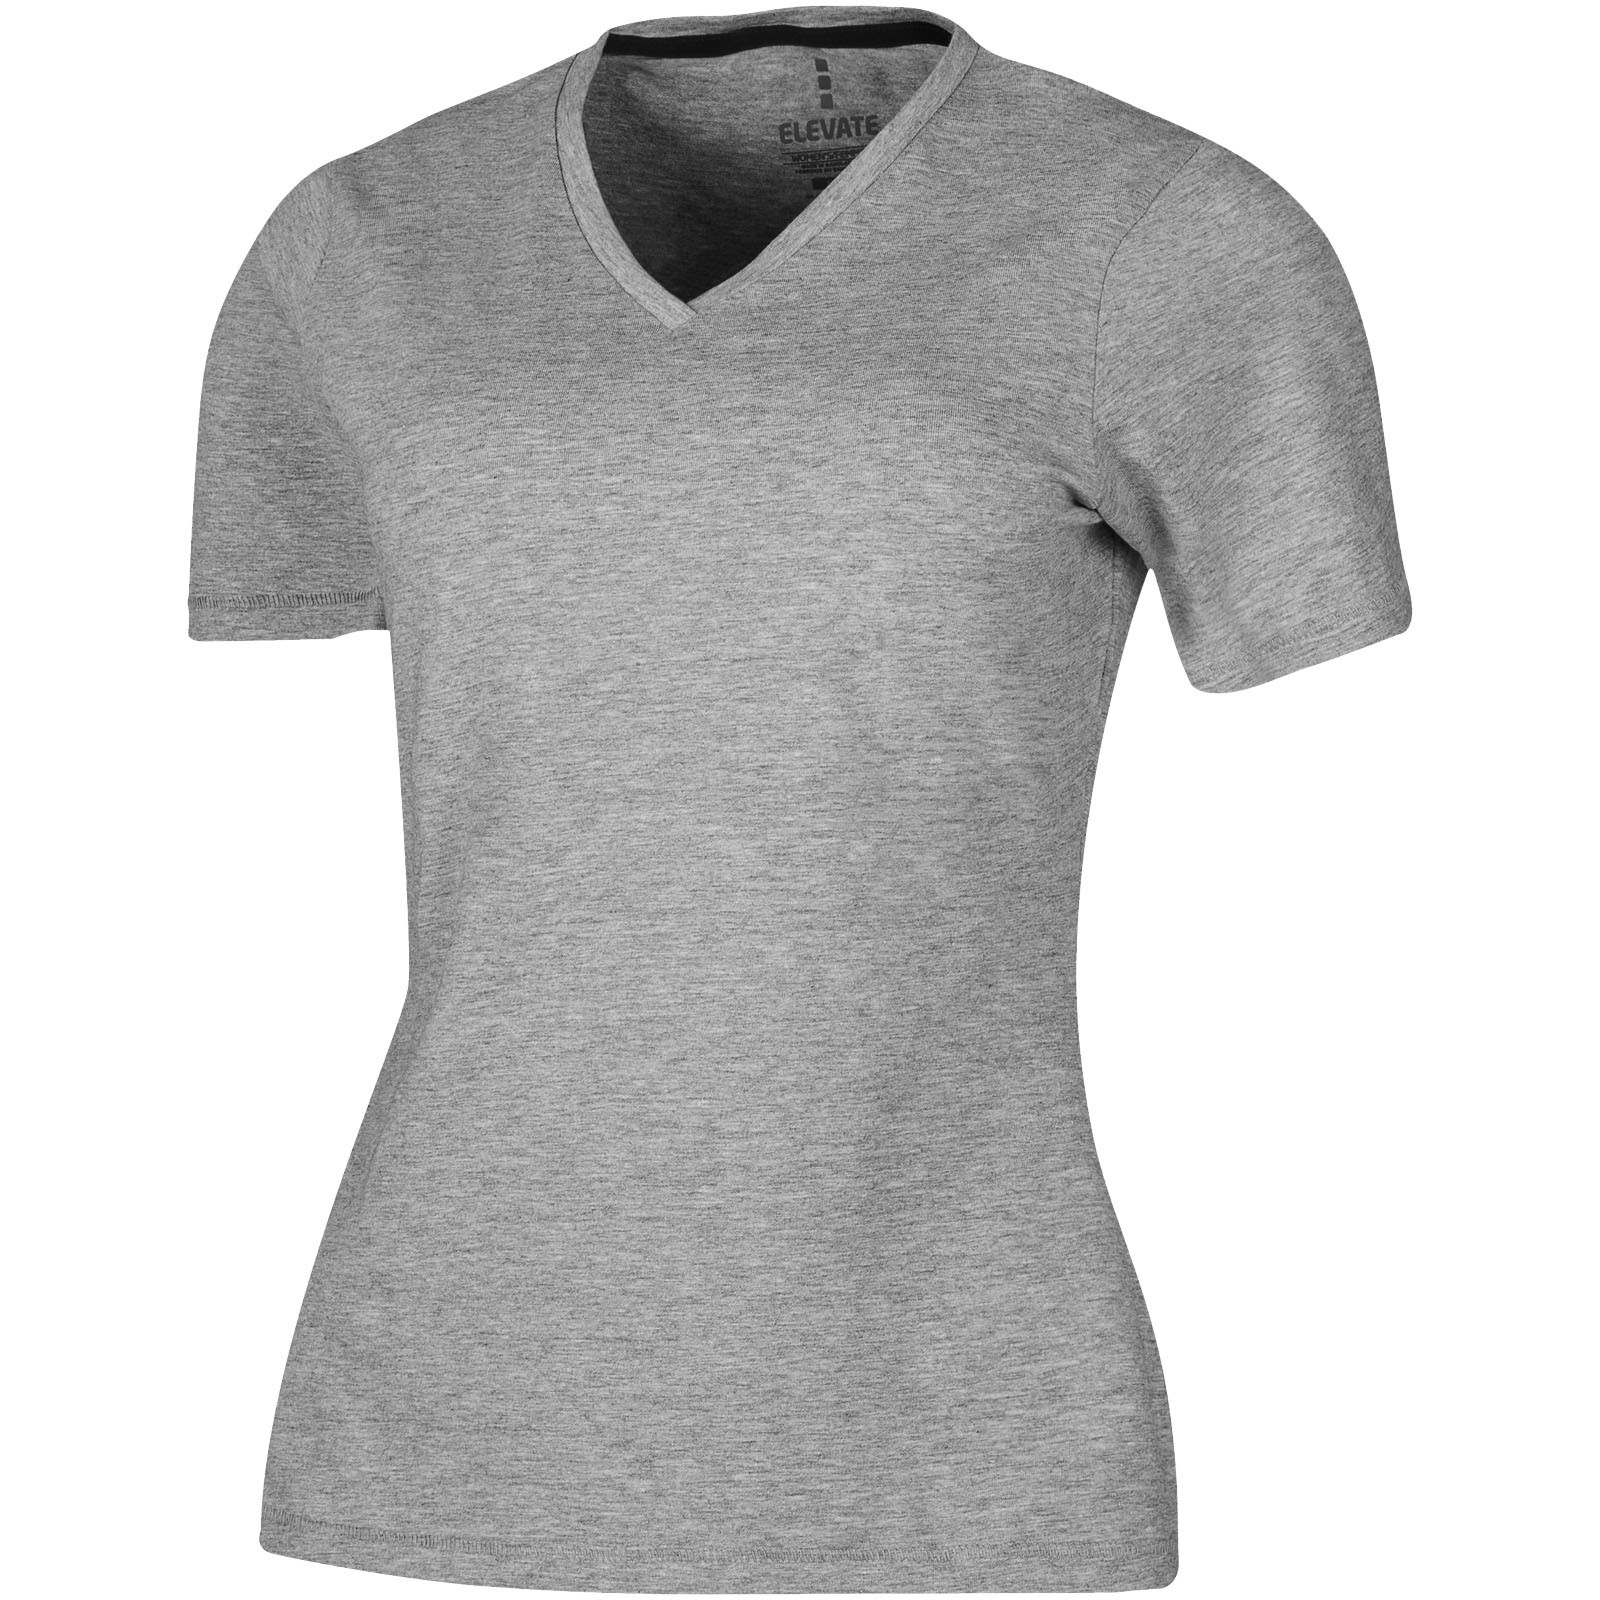 Kawartha short sleeve women's GOTS organic t-shirt - Grey melange / XL